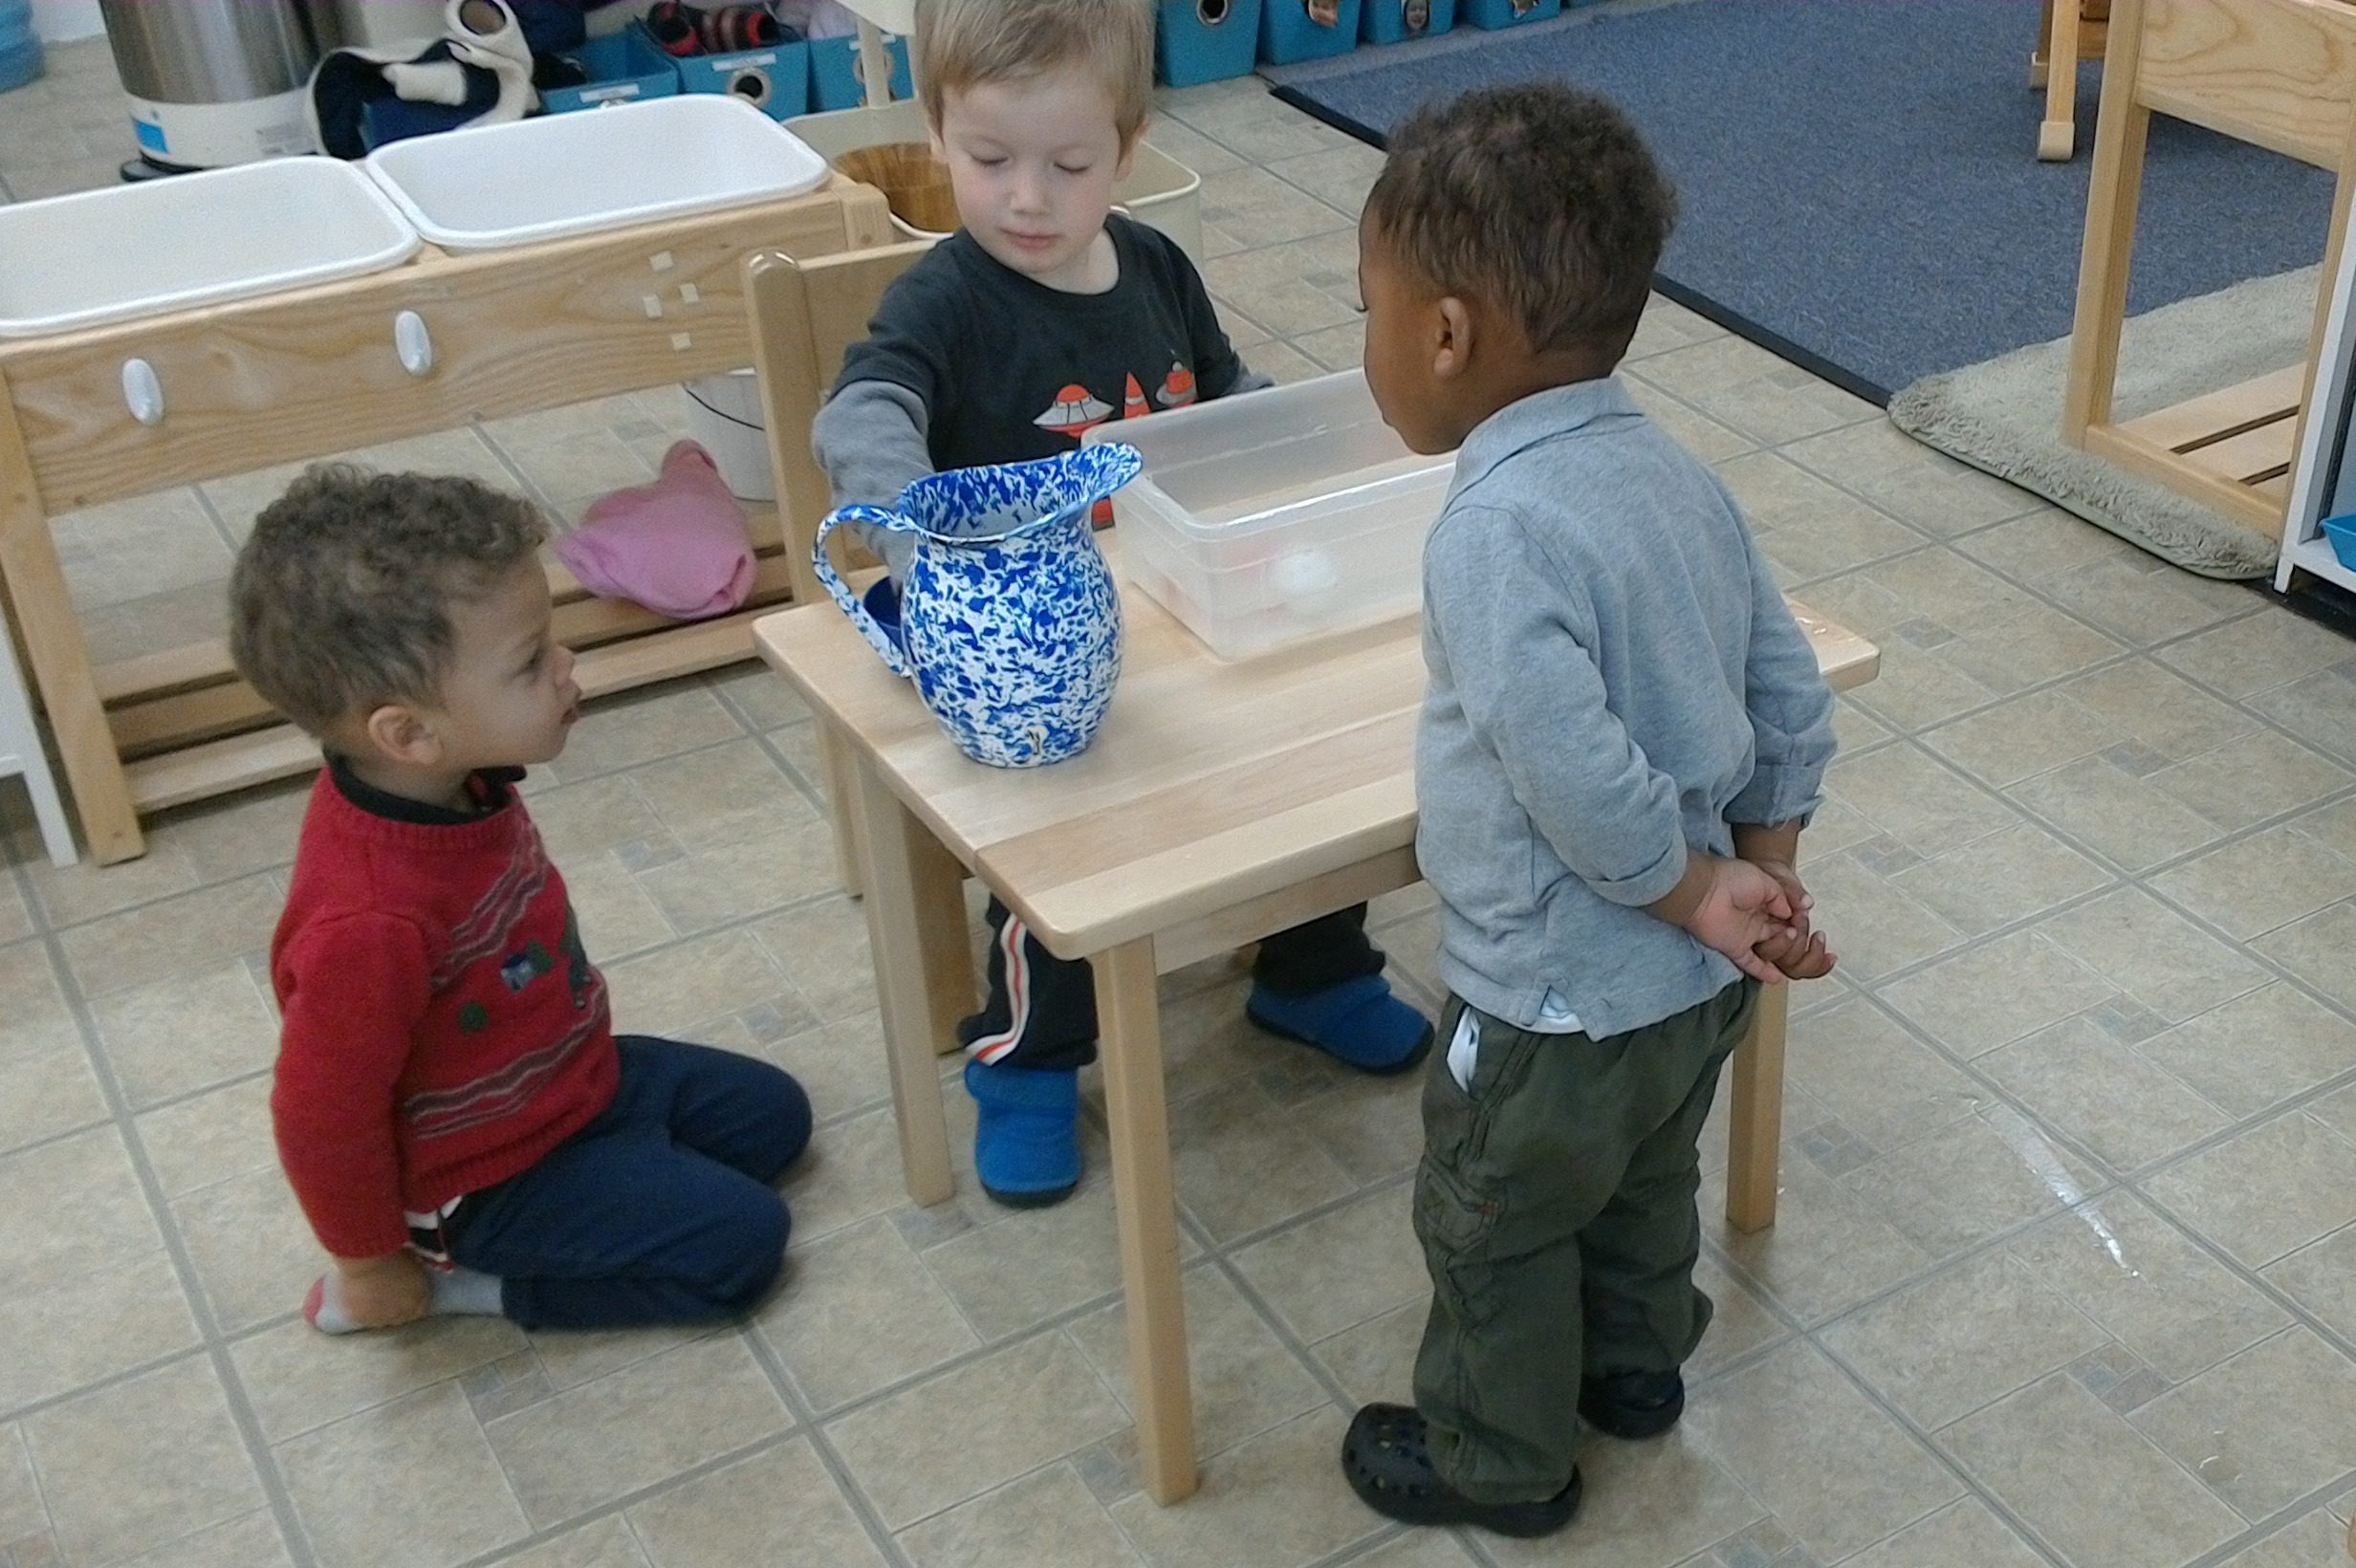 Grace & Courtesy for Toddlers is All About Respect